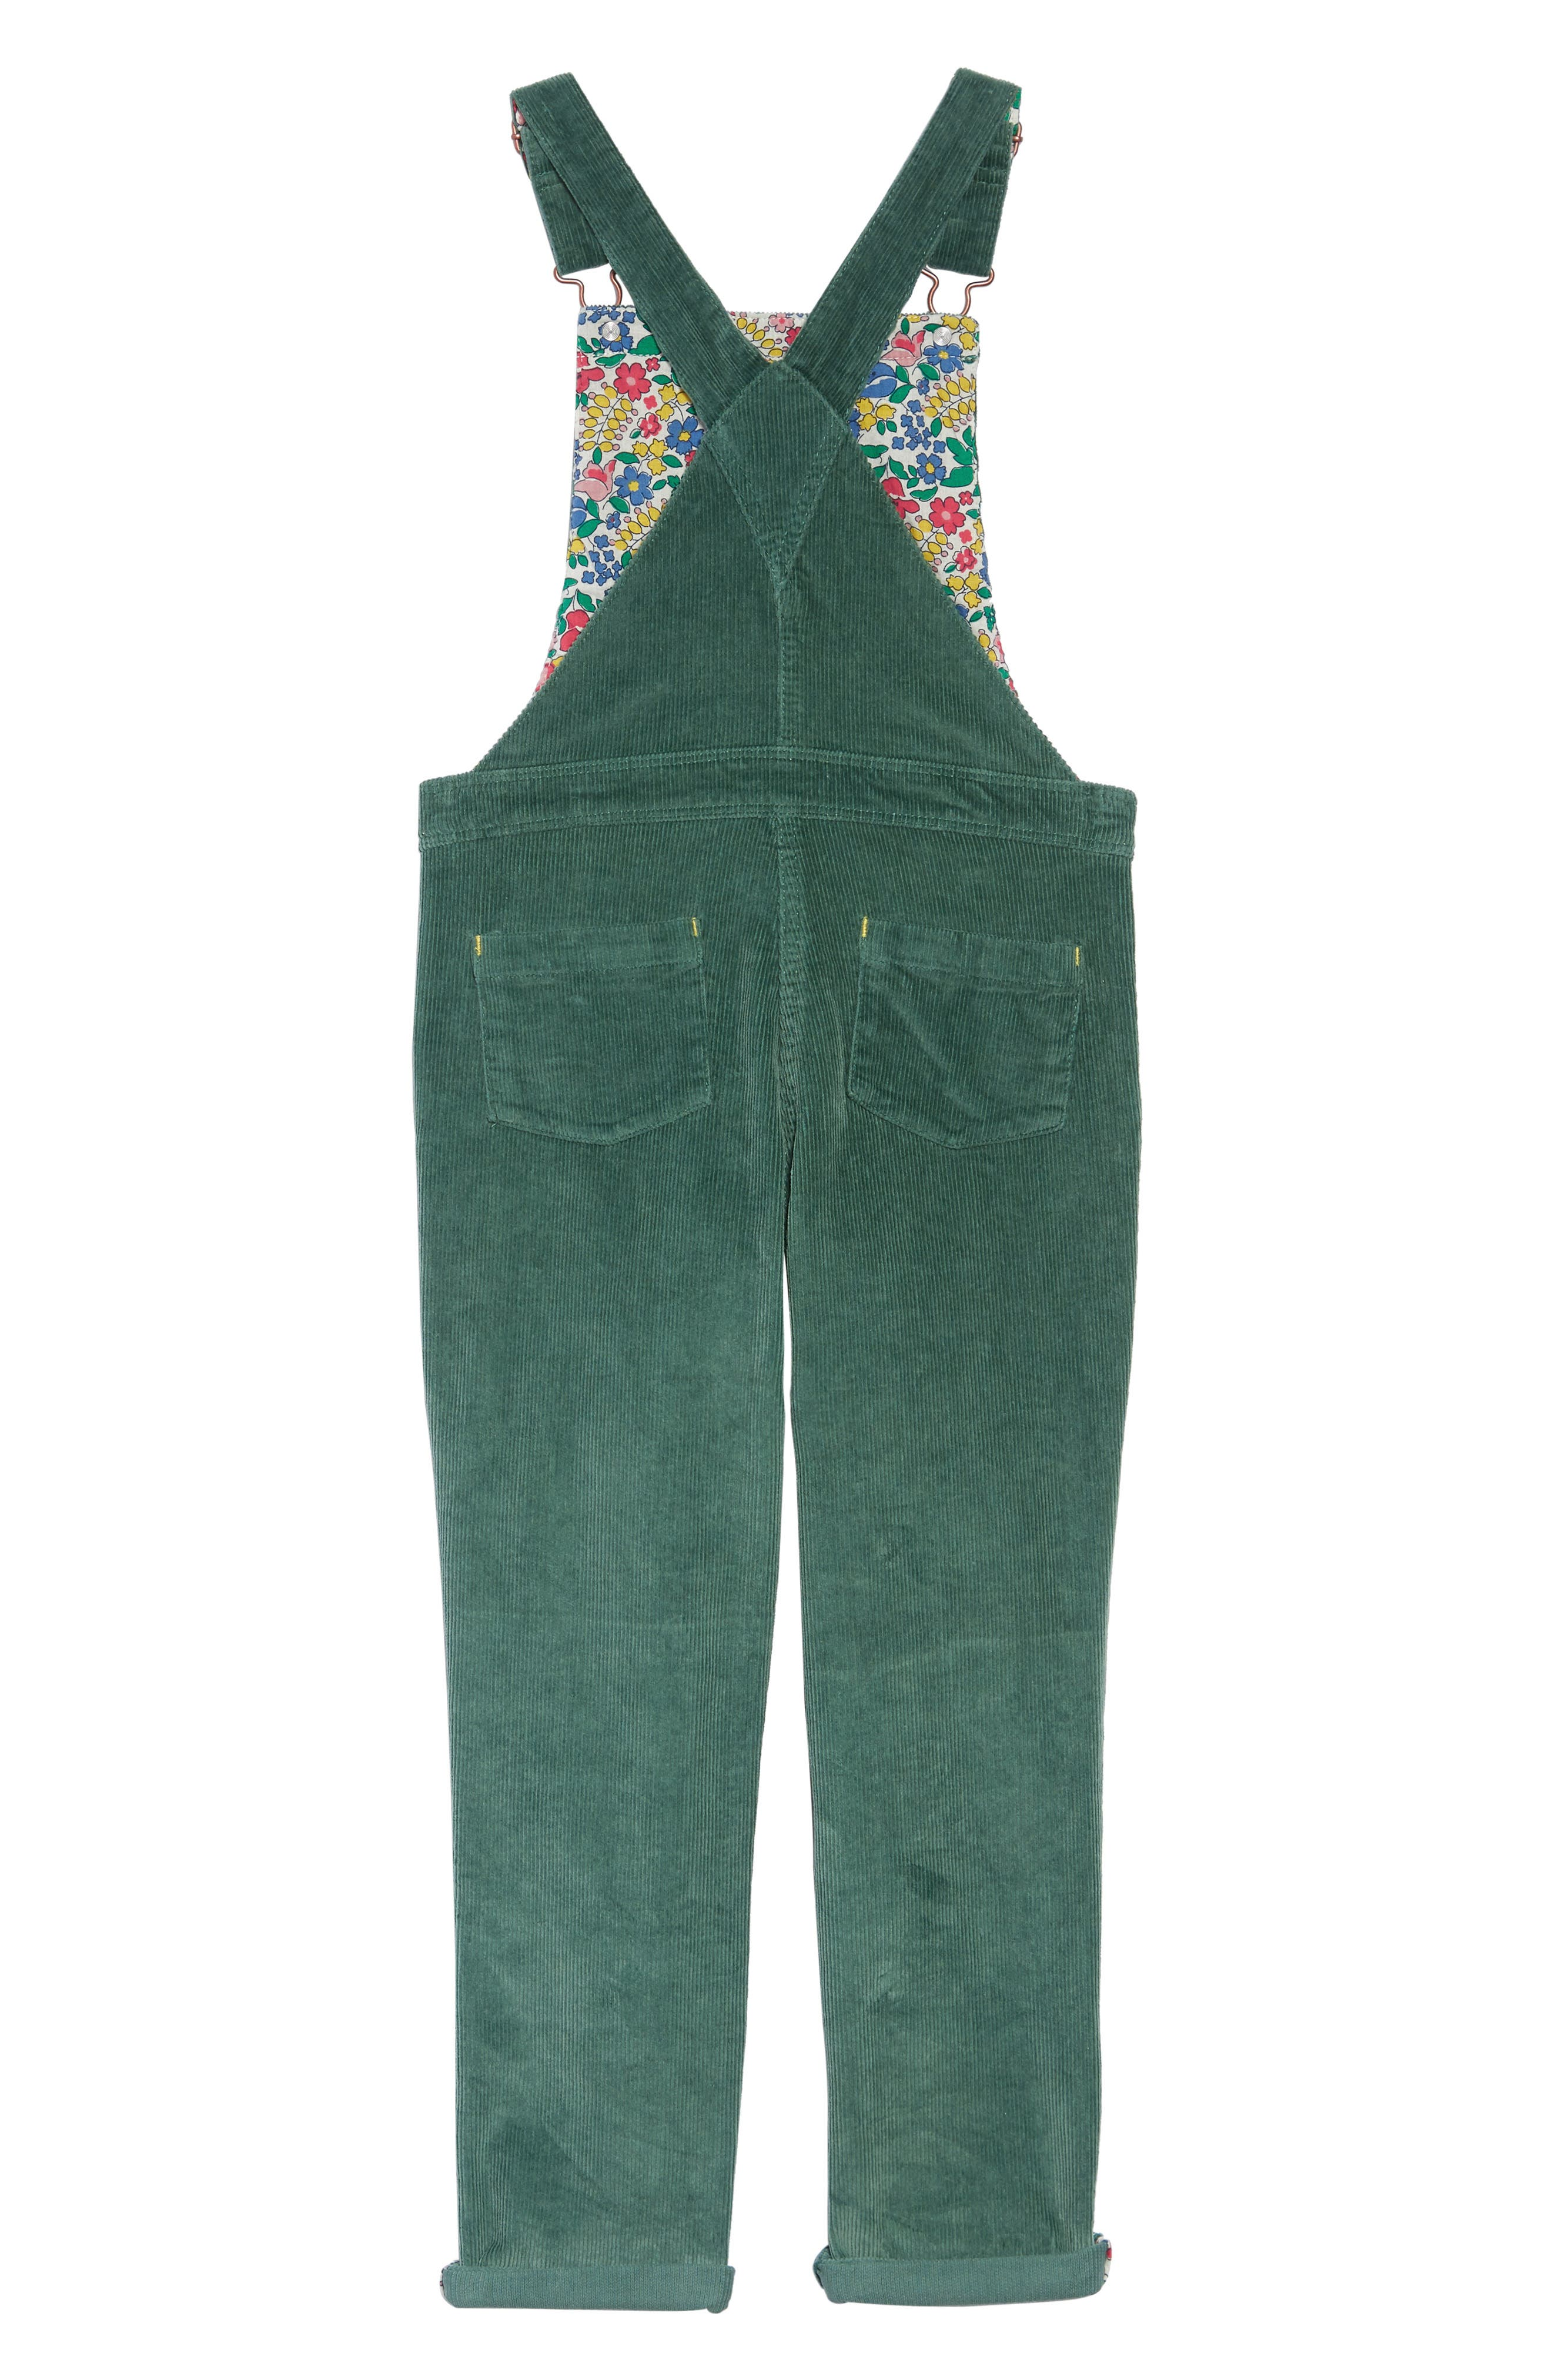 Embroidered Dungaree Overalls,                             Alternate thumbnail 2, color,                             WILLOW GREEN